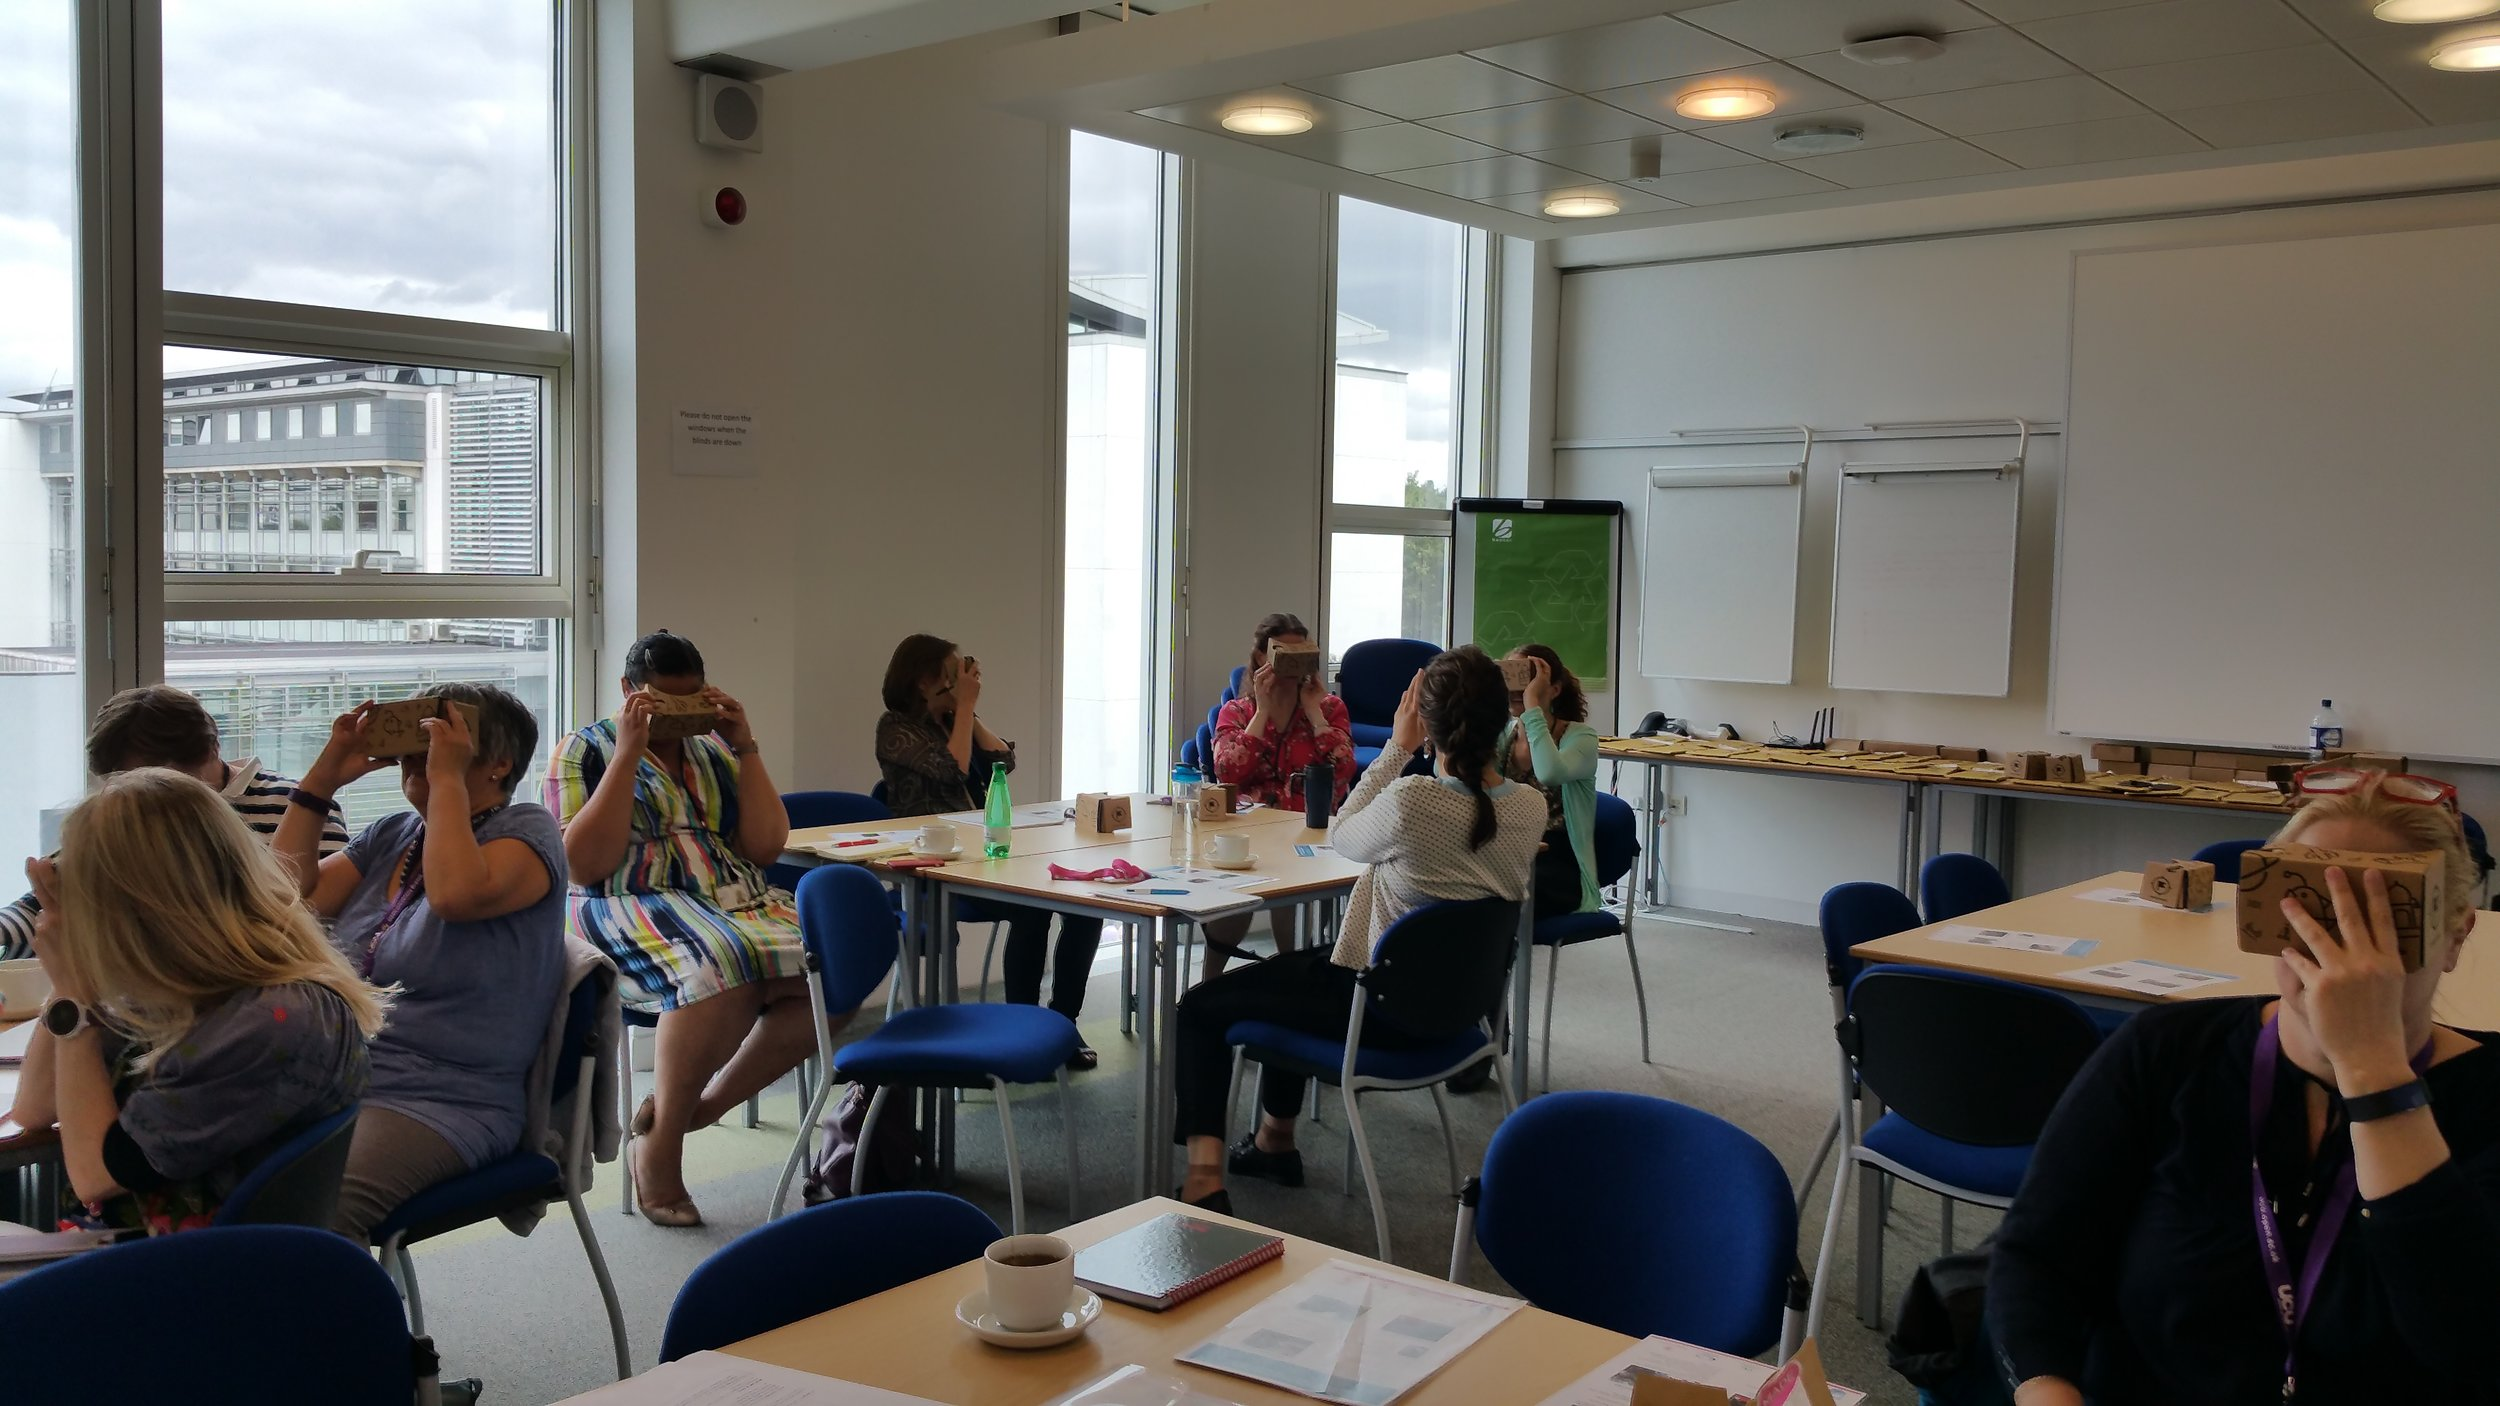 Photo from the workshop of the Employability and Scholarship Network of The Open University, UK. Participants are looking at Google Expeditions via the virtual reality viewers.